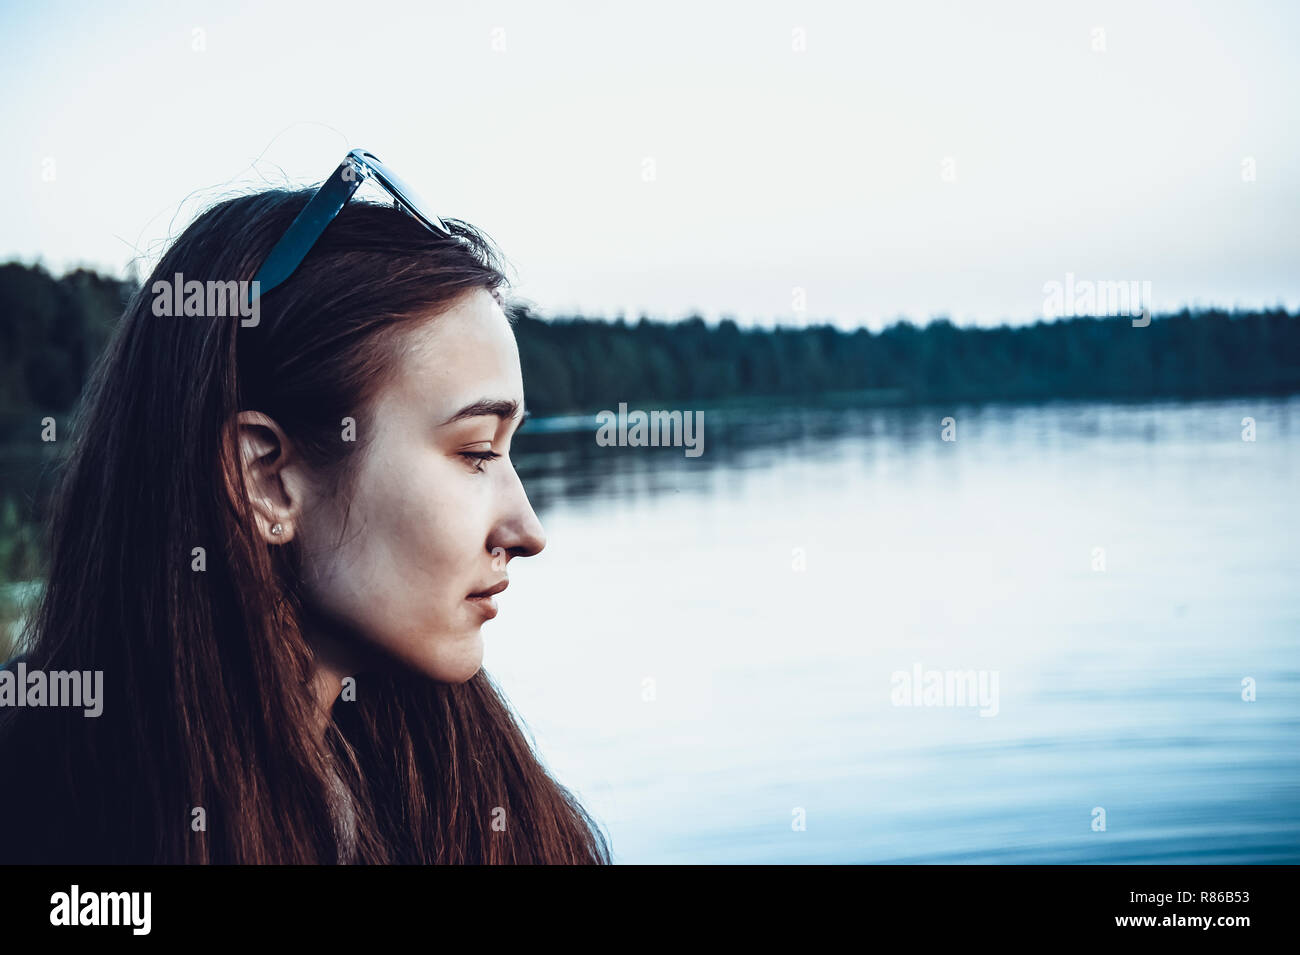 Female profile on the background of the lake. Vintage cool style. - Stock Image